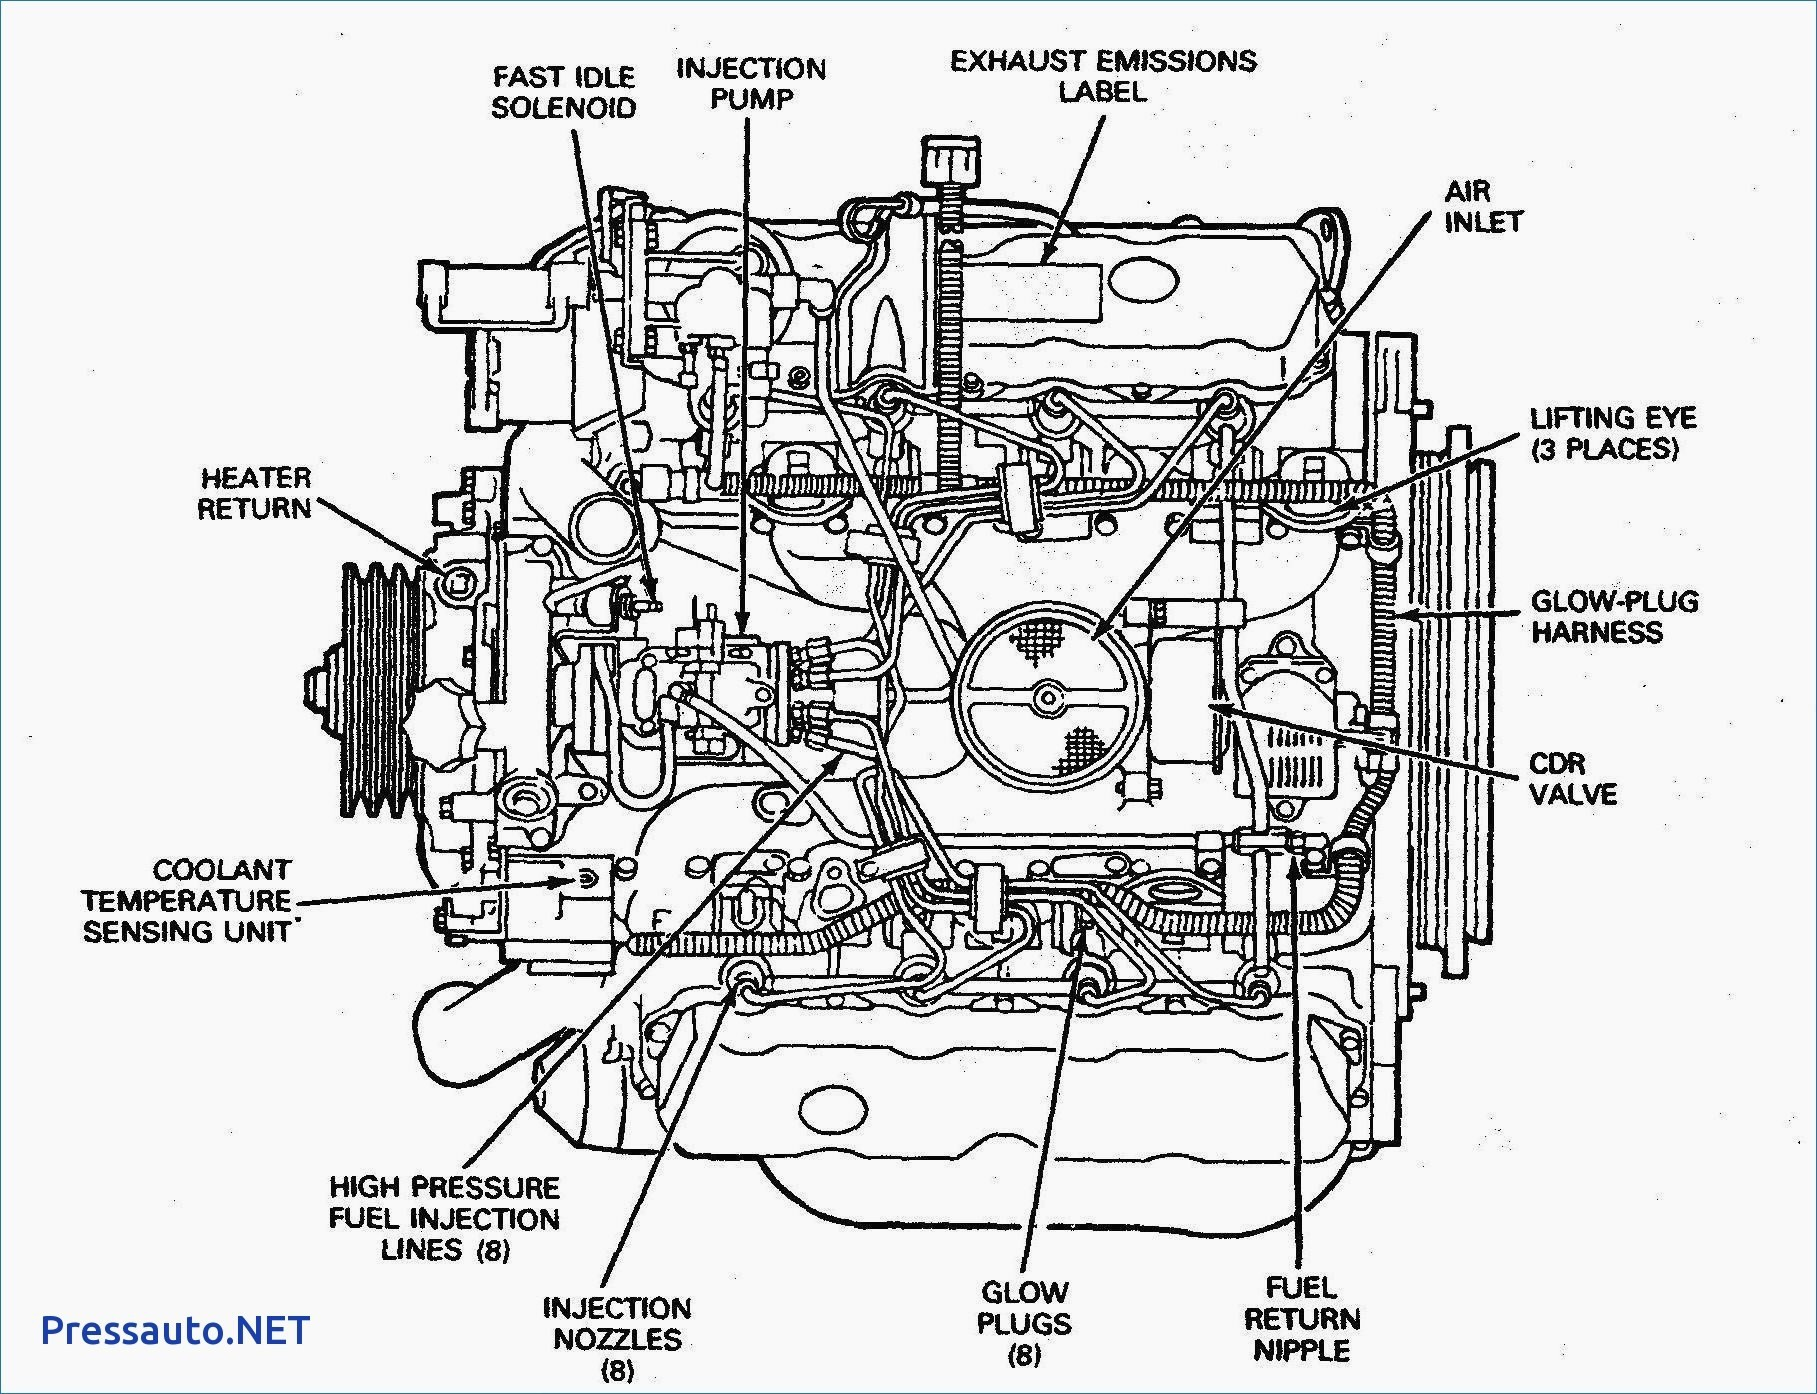 hight resolution of 7 3 diesel engine diagram wiring libraryford 4 0 sohc engine diagram ford 7 3 glow